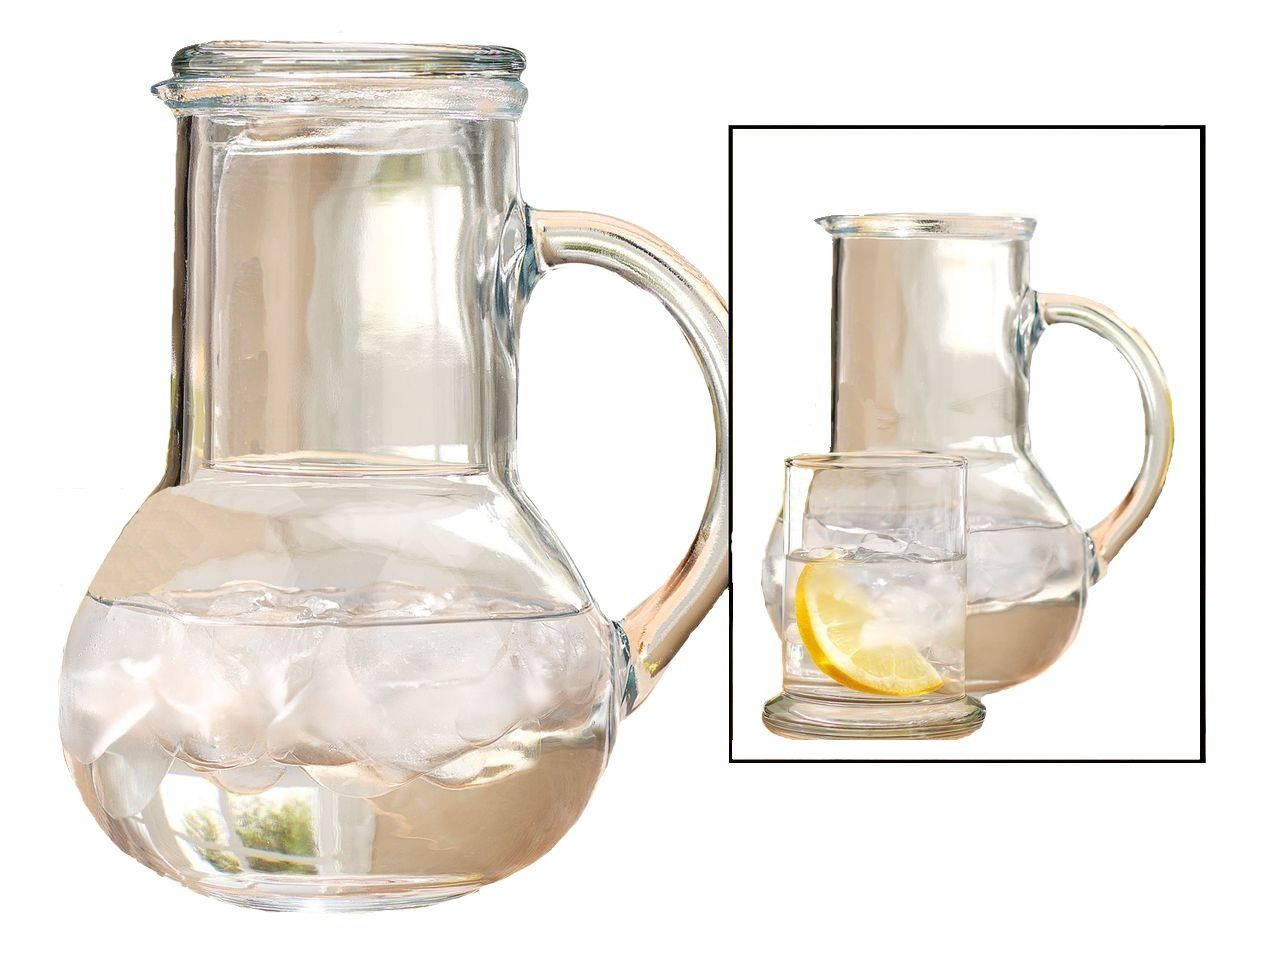 Amazon Com Clear Glass Bedside Water Carafe With Lid That Converts Into Drinking Glass Pitcher And Tumbler Kitchen Carafe Set Bedside Carafe Glass Carafe